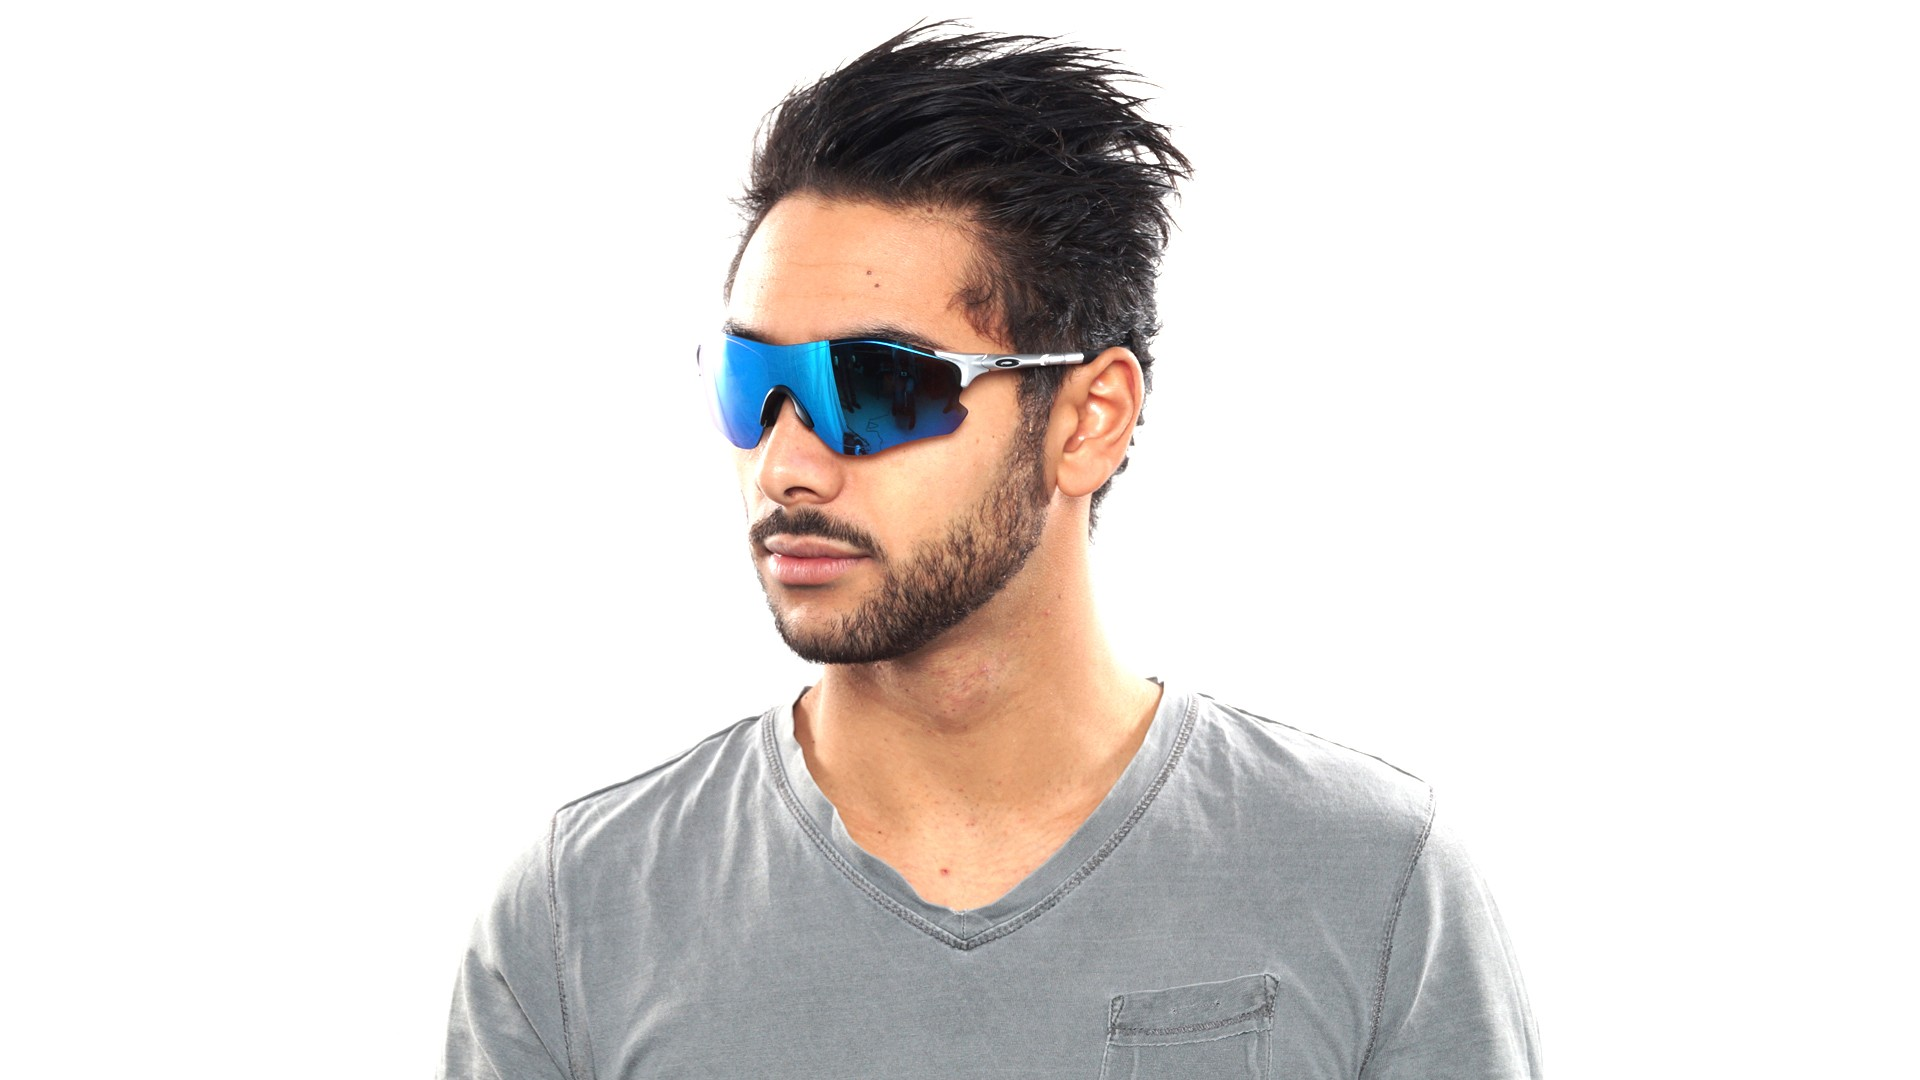 frames for pictures online with Oakley Sunglasses Evzero Sunglasses En on 35688620 additionally 12 Perfect Silver Gift Items For Indian Wedding That Everyone Will Love besides Index as well Fcmoorsel furthermore Axis redo.